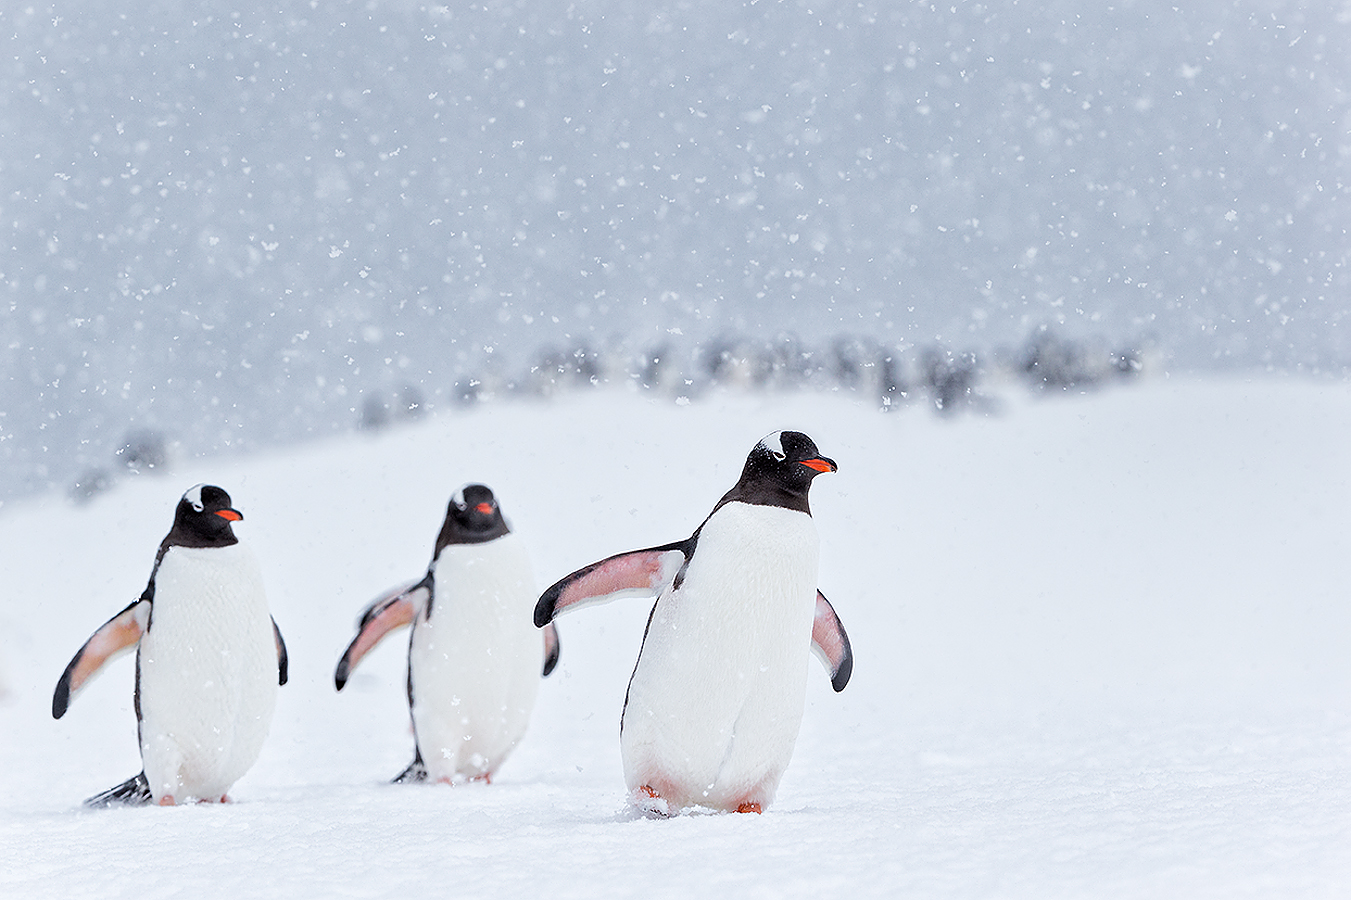 small_clemens-vanderwerf-gentoo-penguins-marching-in-the-snow_e7t7502-cuverville-island-antarctica